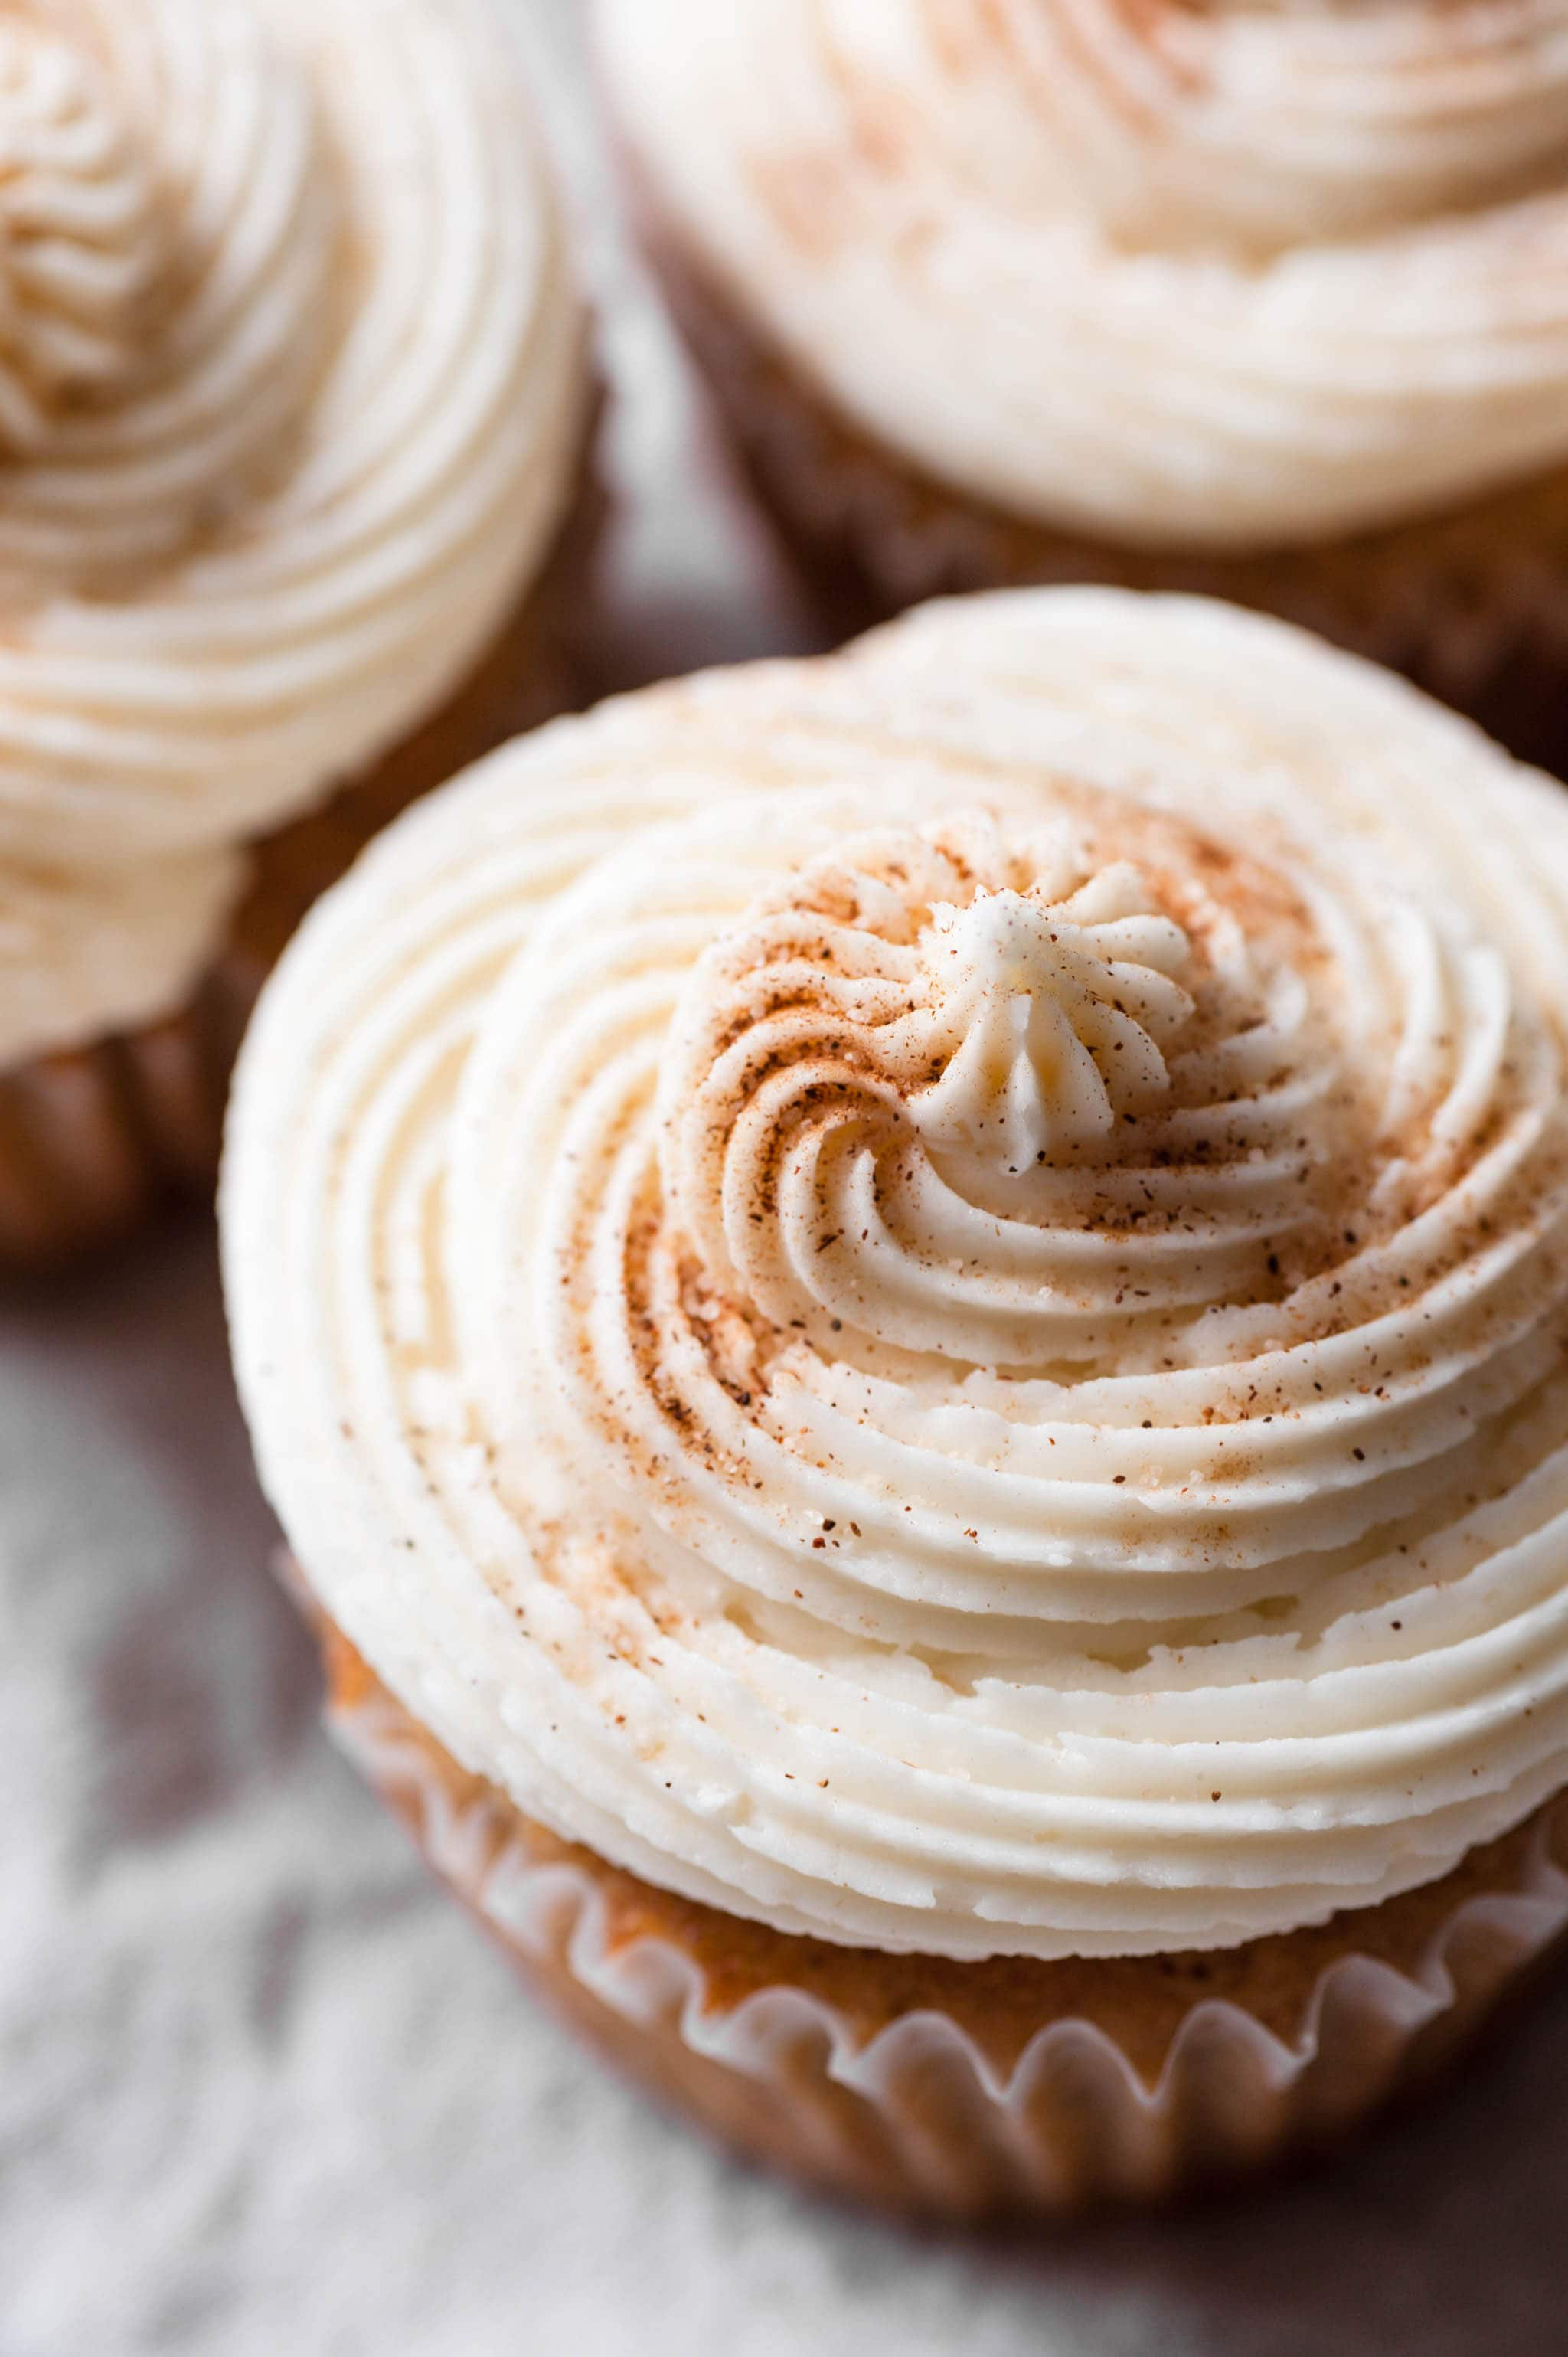 Filled Cupcake Recipe with Maple Vanilla Frosting